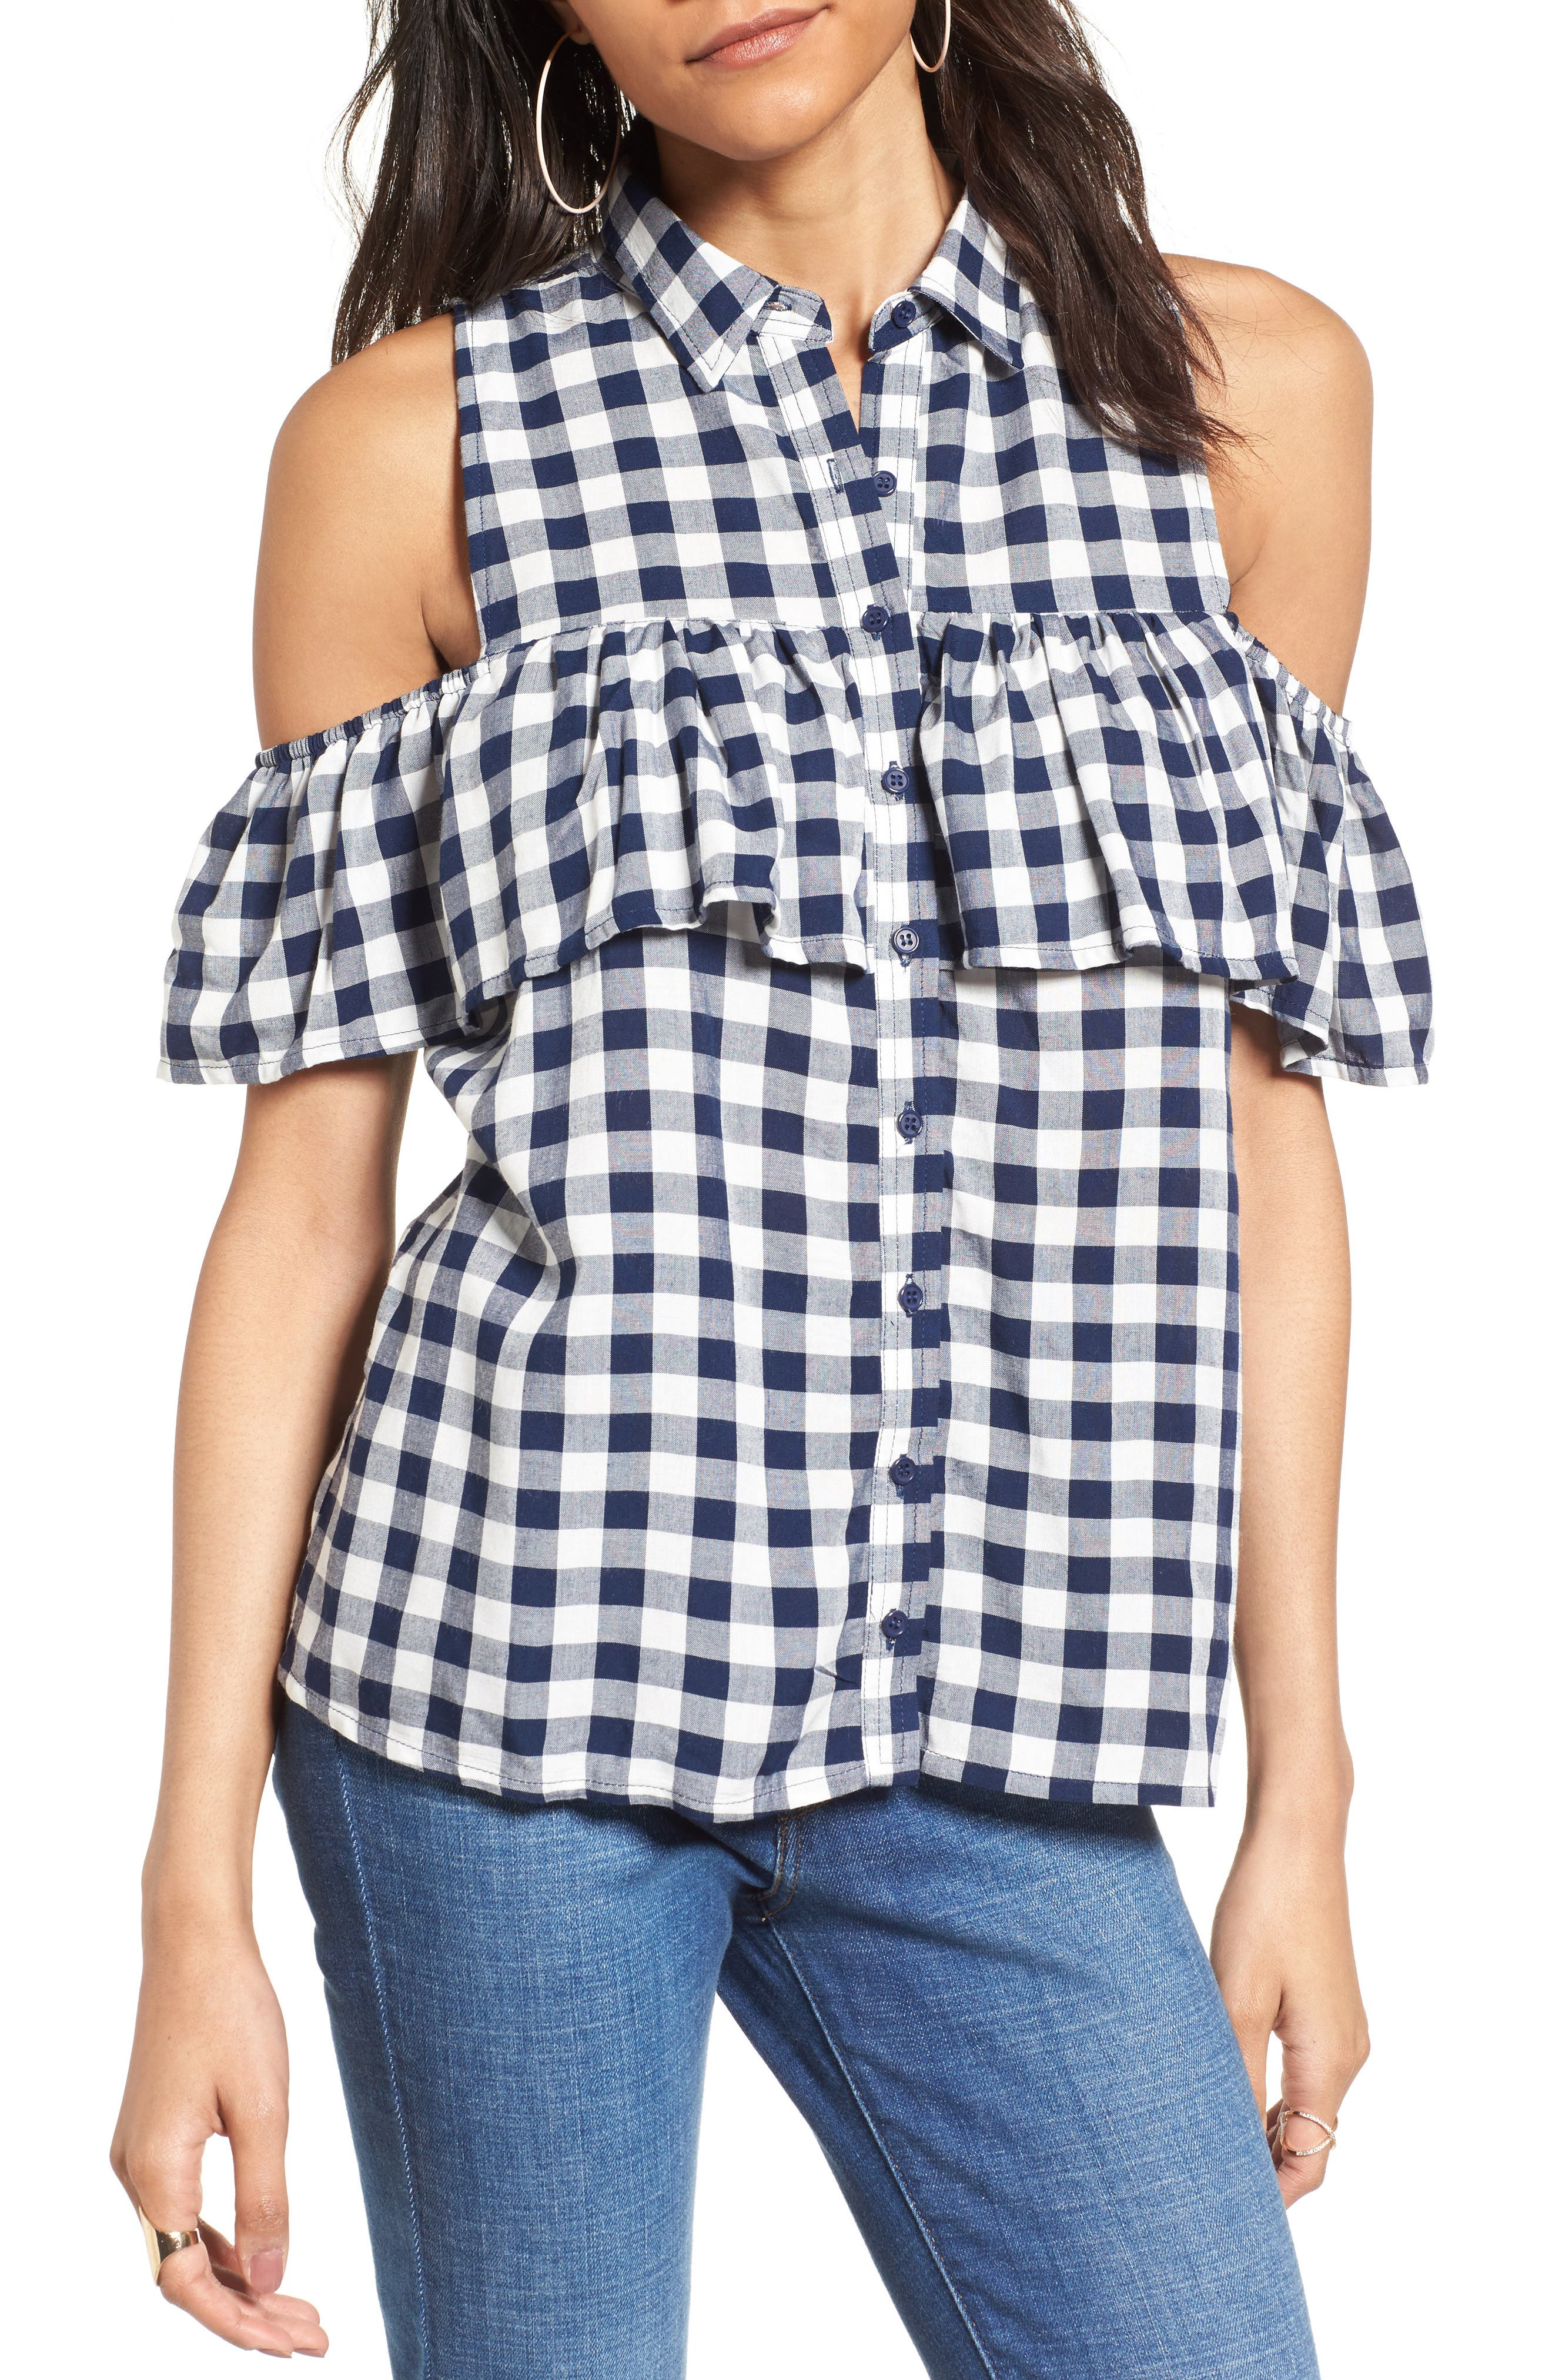 Main Image - Love, Fire Gingham Cold Shoulder Top